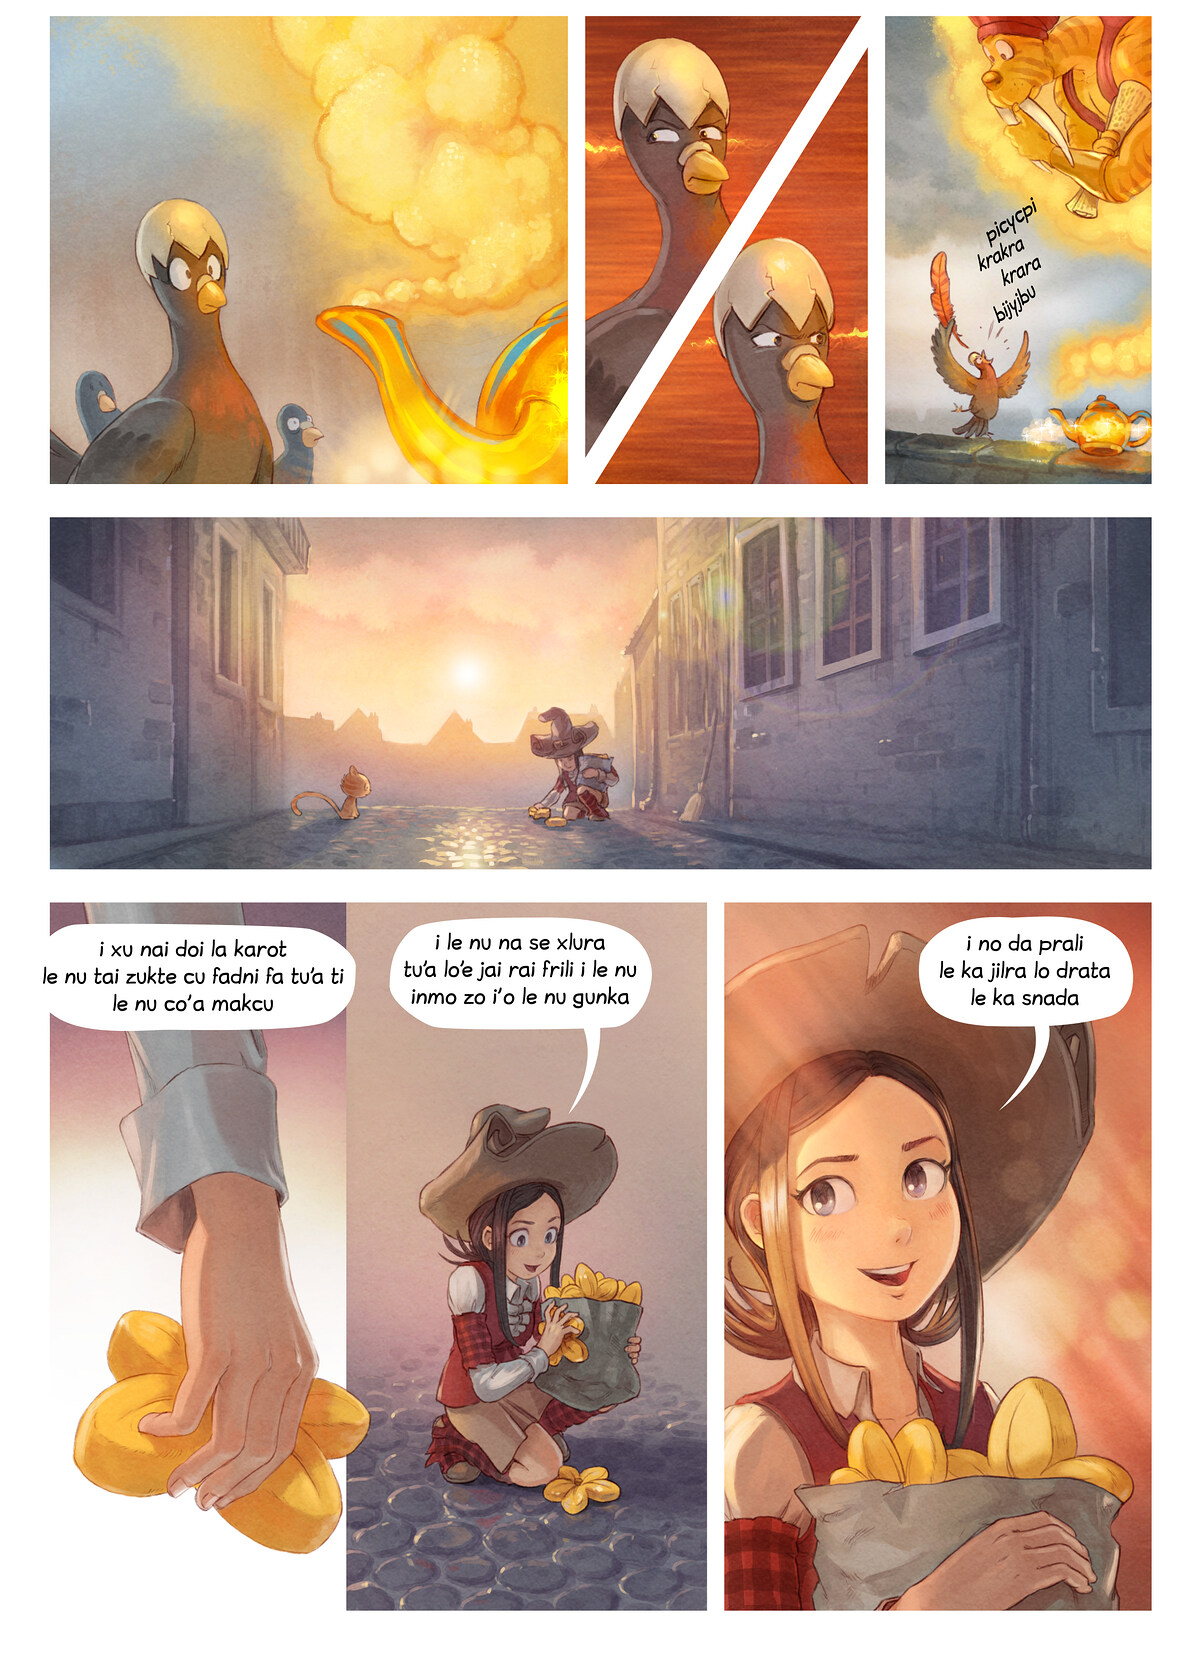 A webcomic page of Pepper&Carrot, pagbu 23 [jb], papri 6